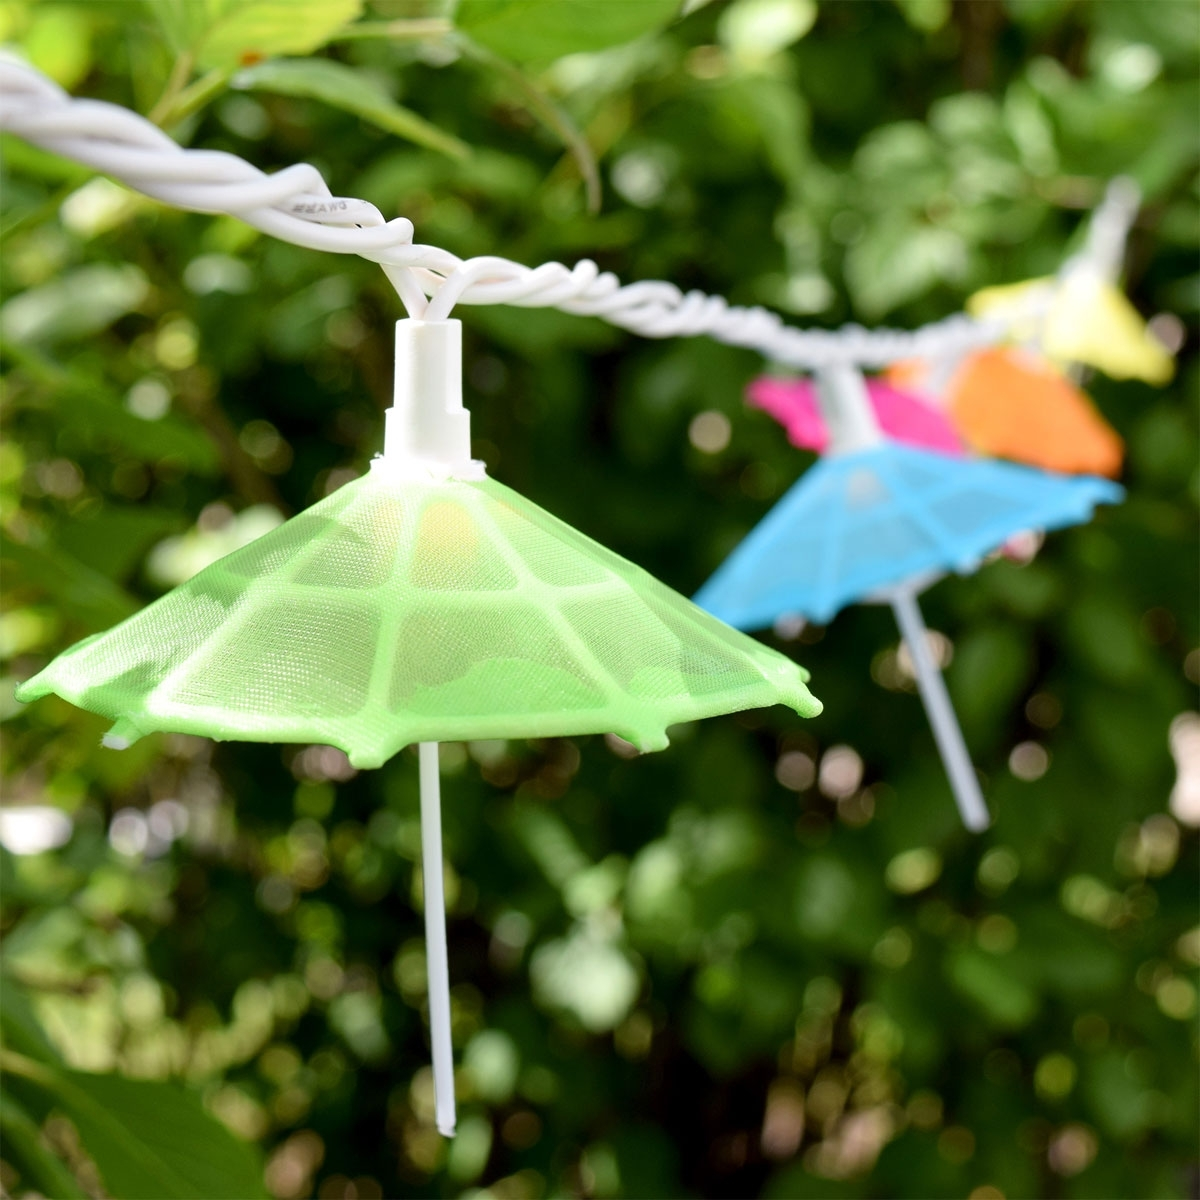 Mini Umbrella Party String Lights - 10 Lights with Outdoor Tropical Lanterns (Image 10 of 20)